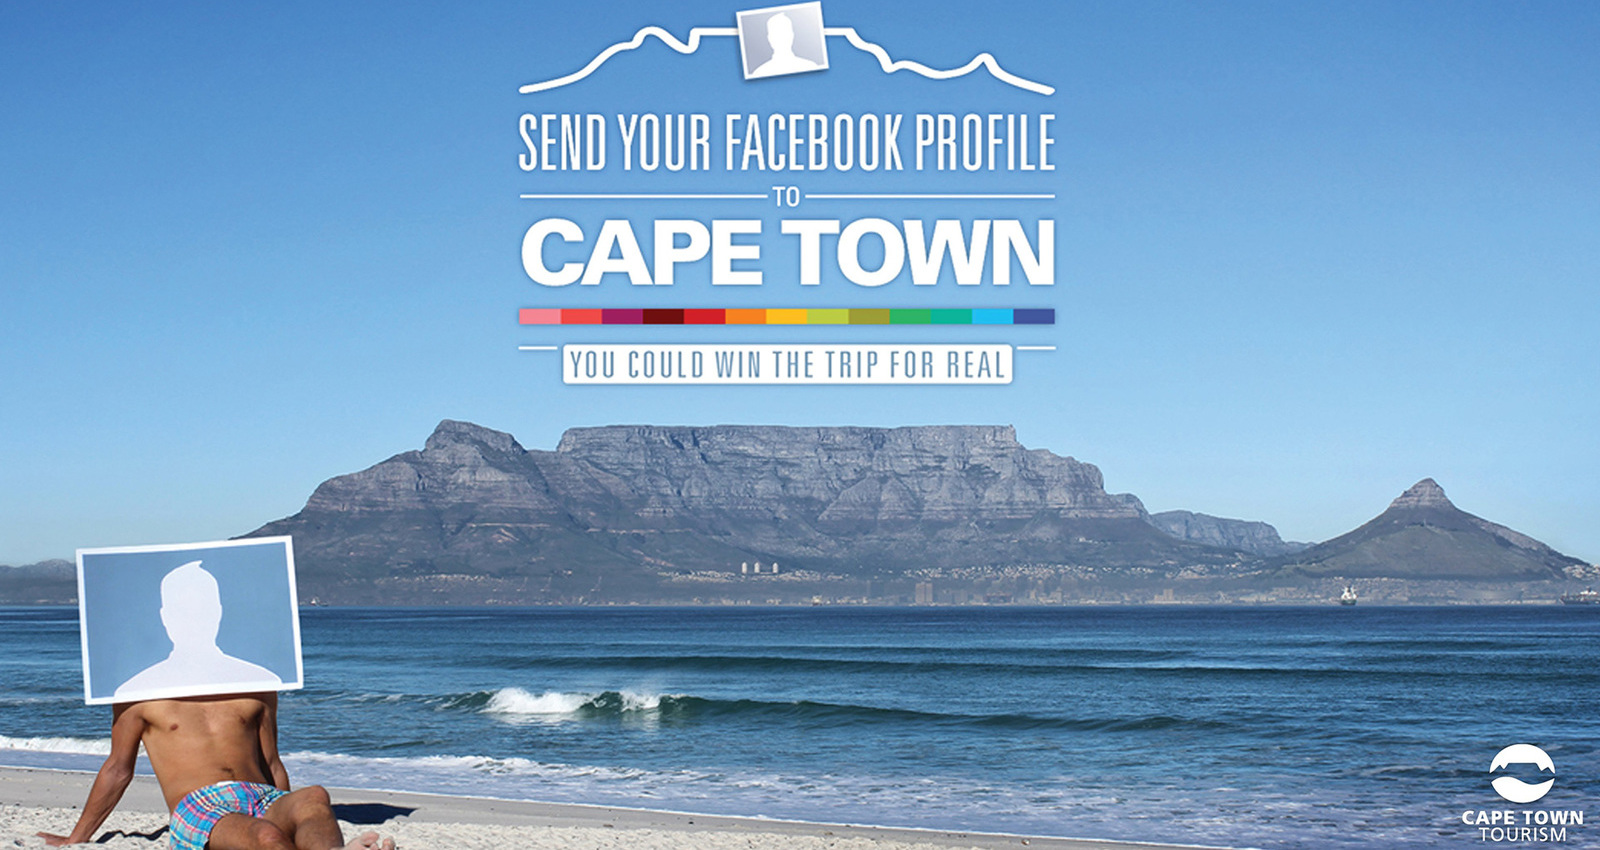 Send Your Facebook Profile to Cape Town